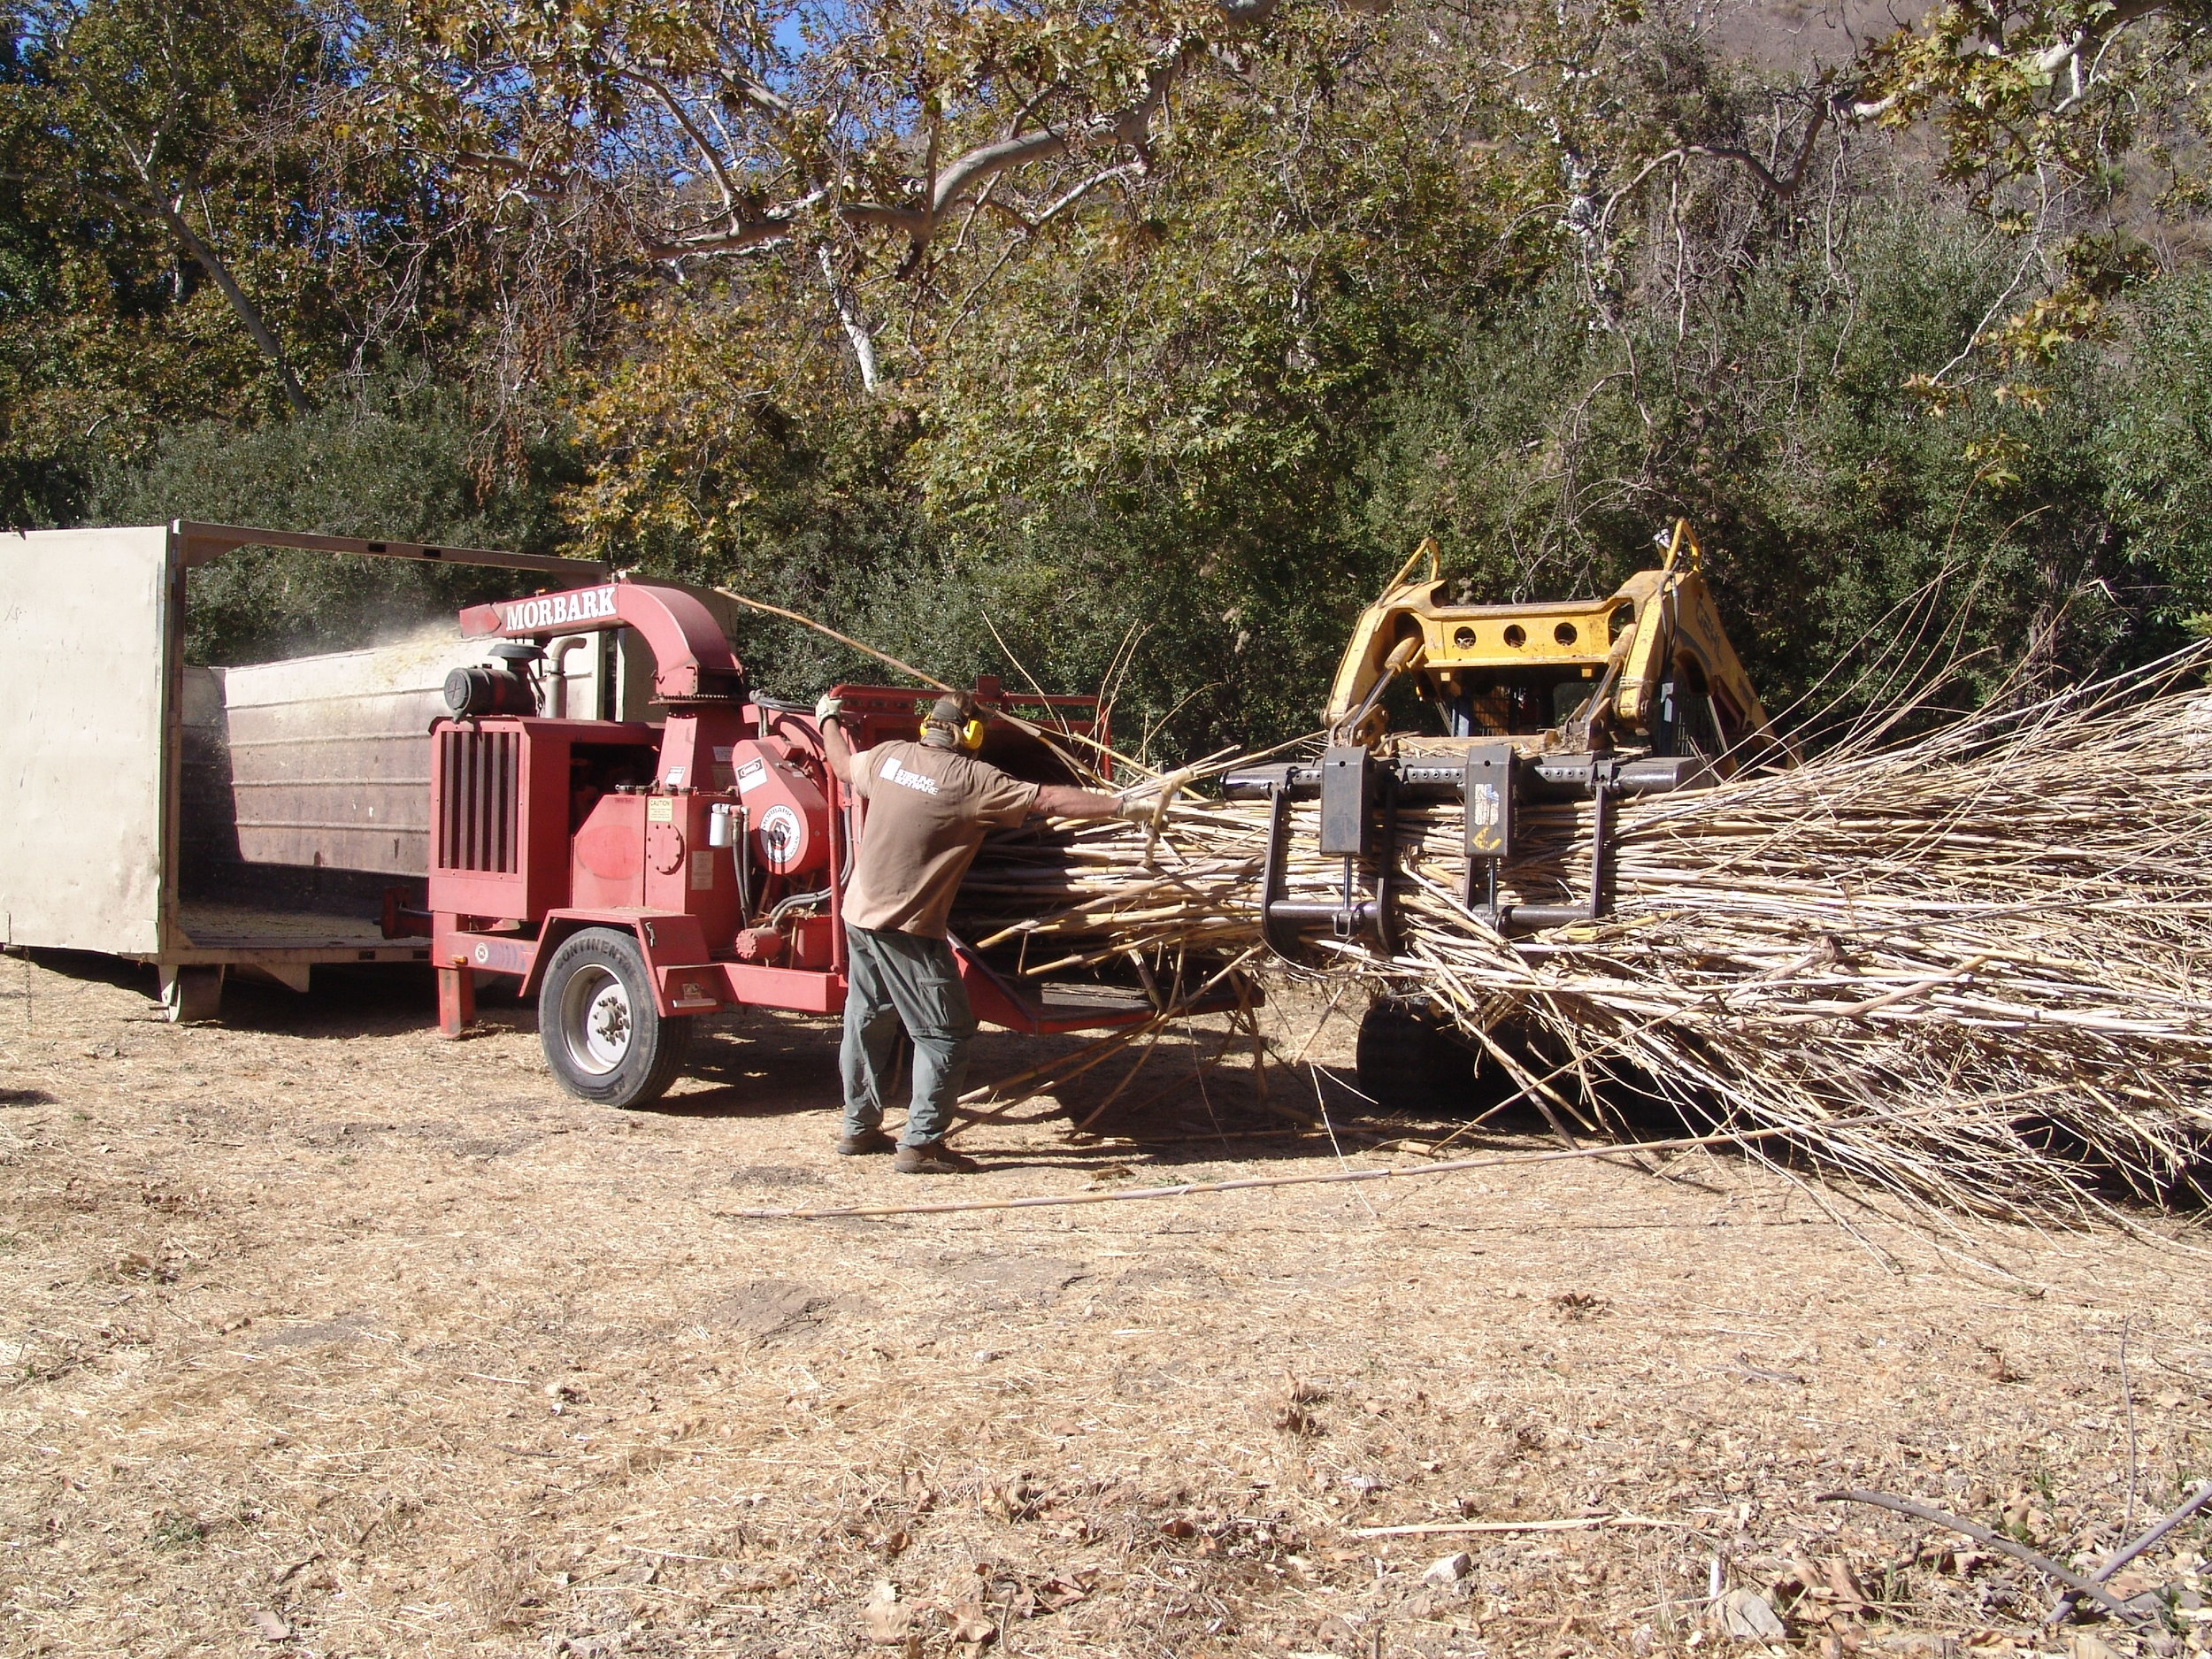 Arundo  eradication at Refugio Creek